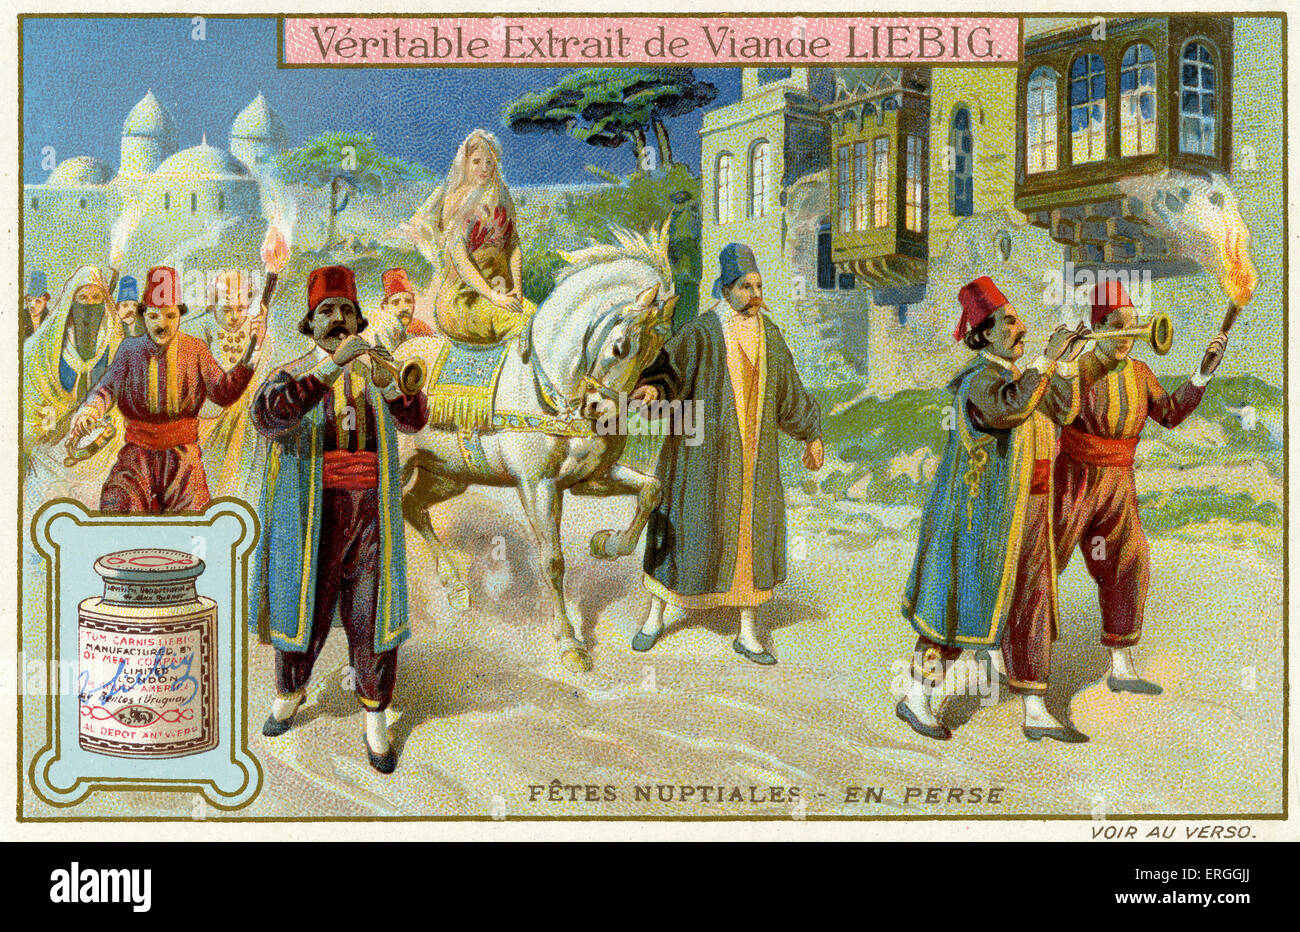 Wedding Celebrations:  Persia,  1910. Traditional marriage ceremony. Liebig Collectible Card ('FÊTES NUPTIALES'). - Stock Image